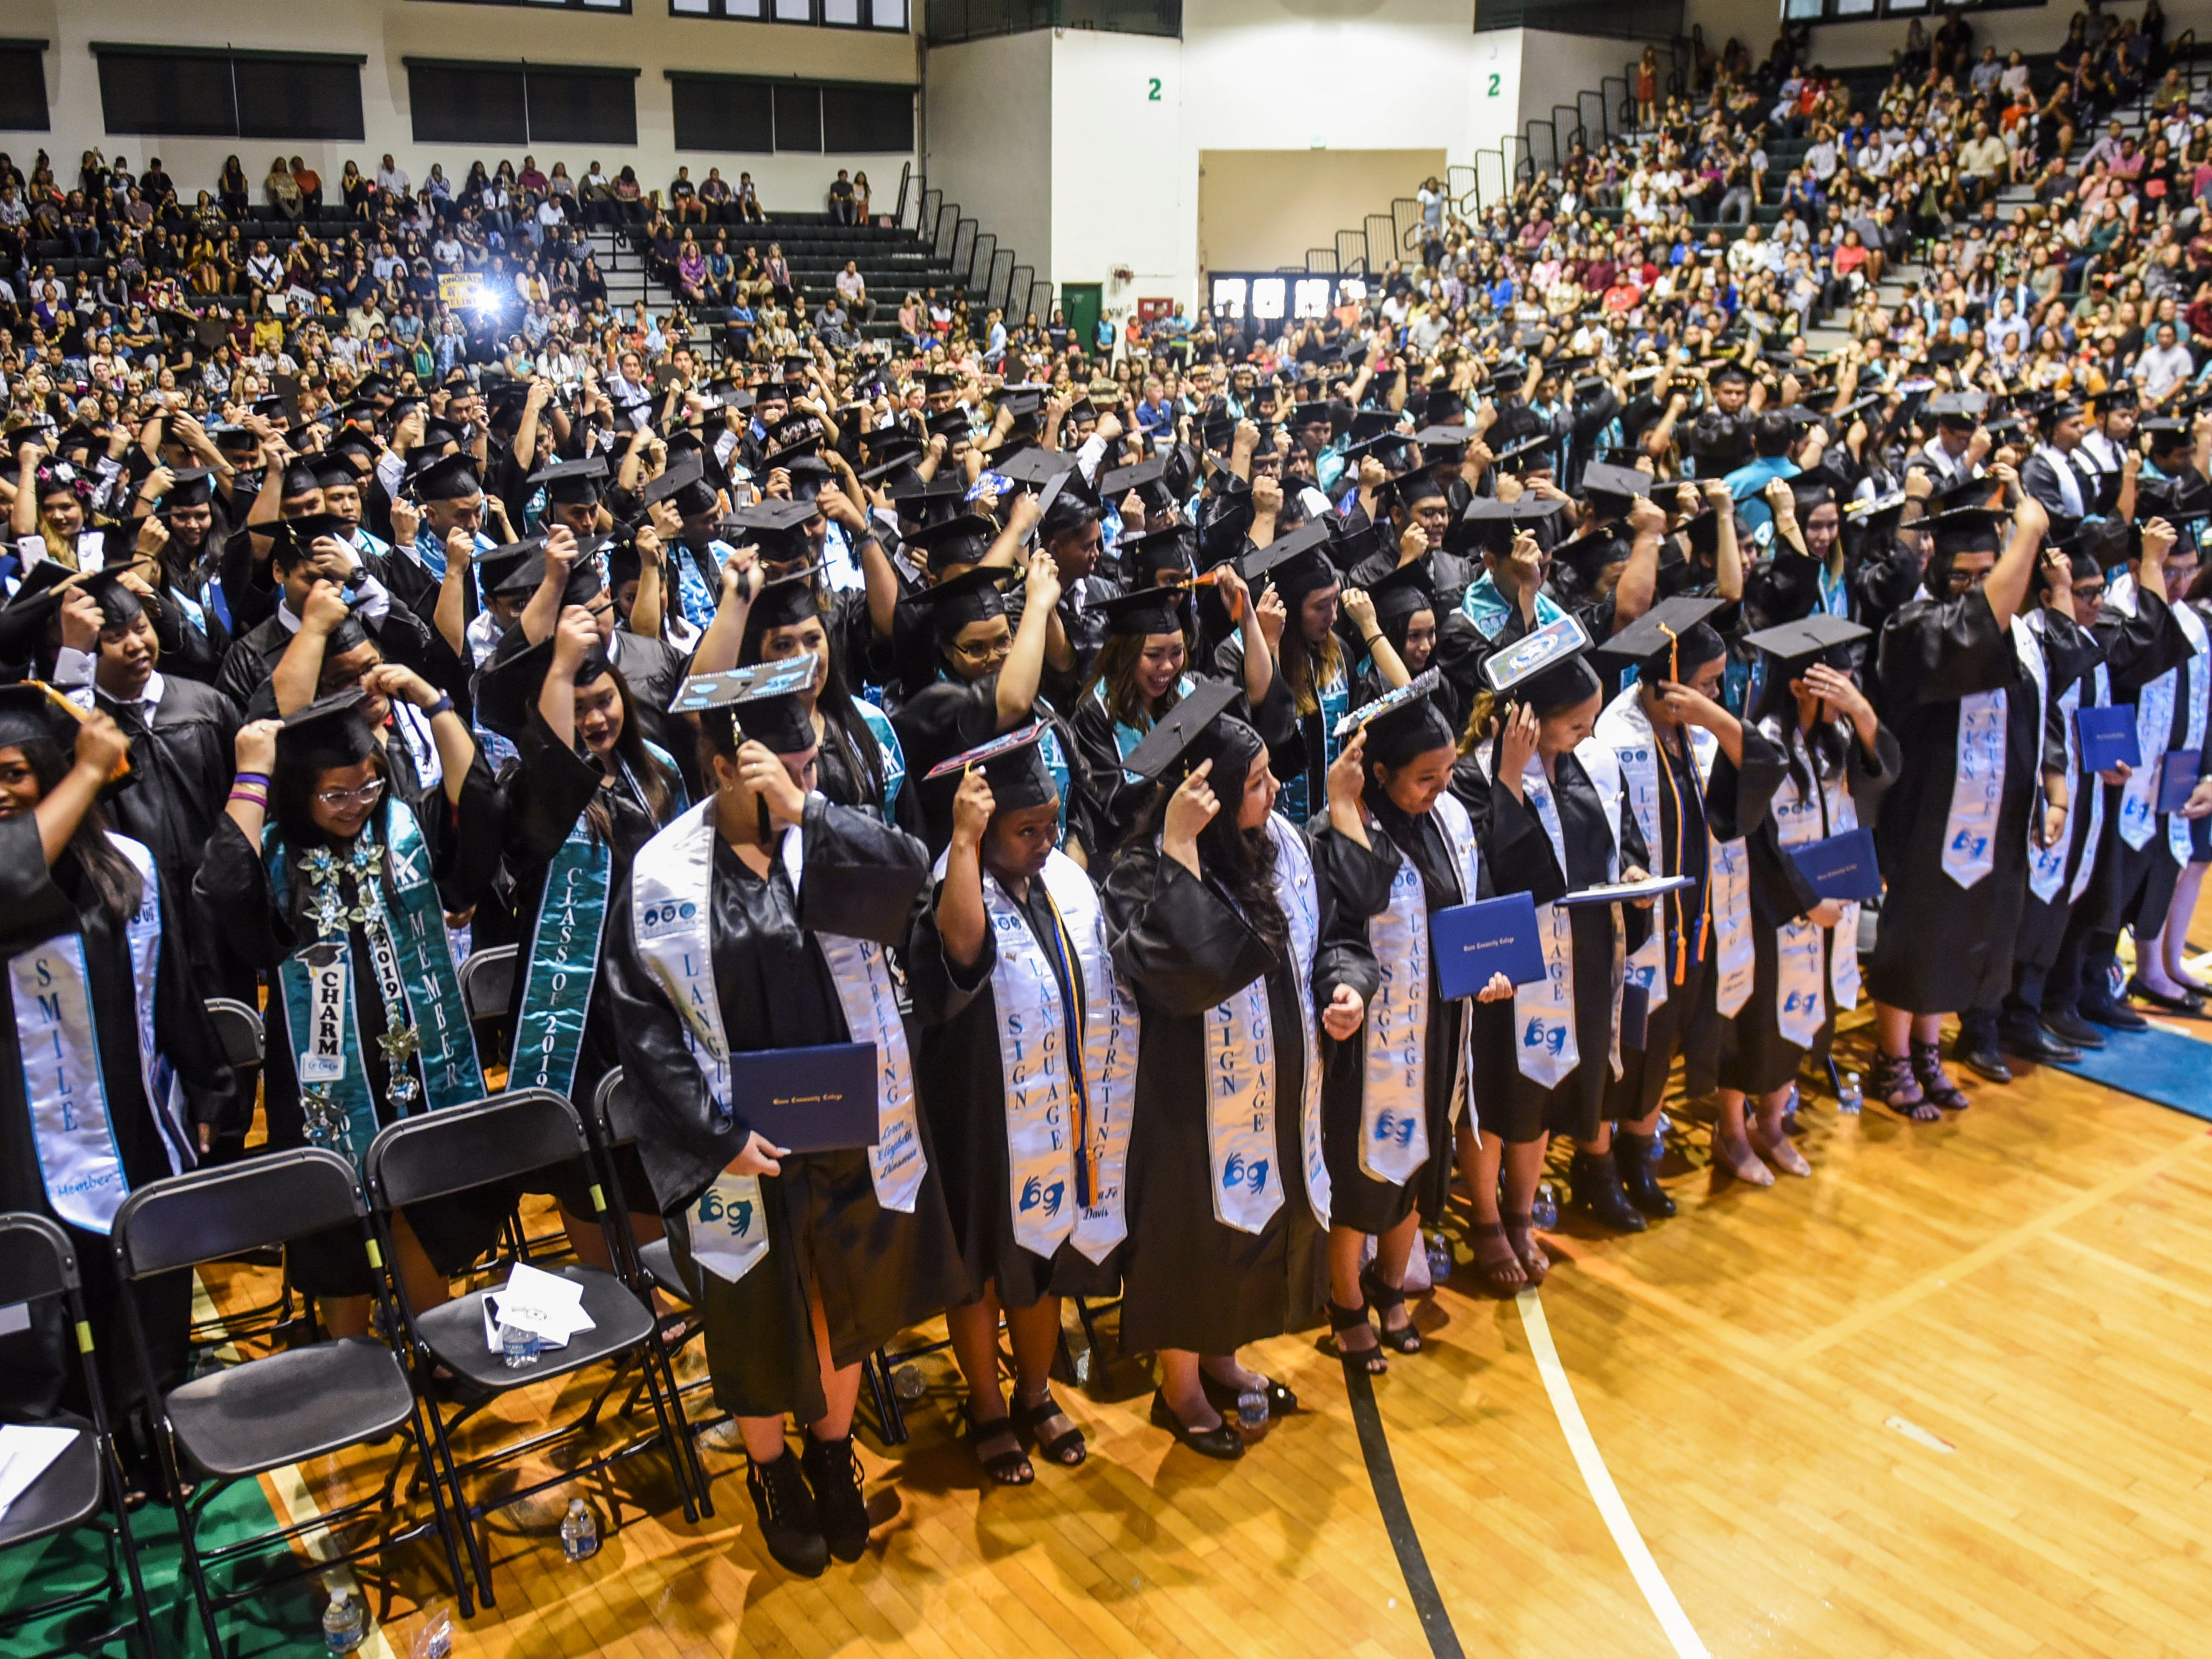 The traditional turning of the tassel is undertaken 357 graduates during Guam Community College's commencement exercise at the University of Guam in Mangilao on Friday, May 10, 2019. The institution conferred a total of 435 degrees, certificates, and/or diplomas to the graduates at the ceremony, attended by hundreds of family members, friends and other well wishers.